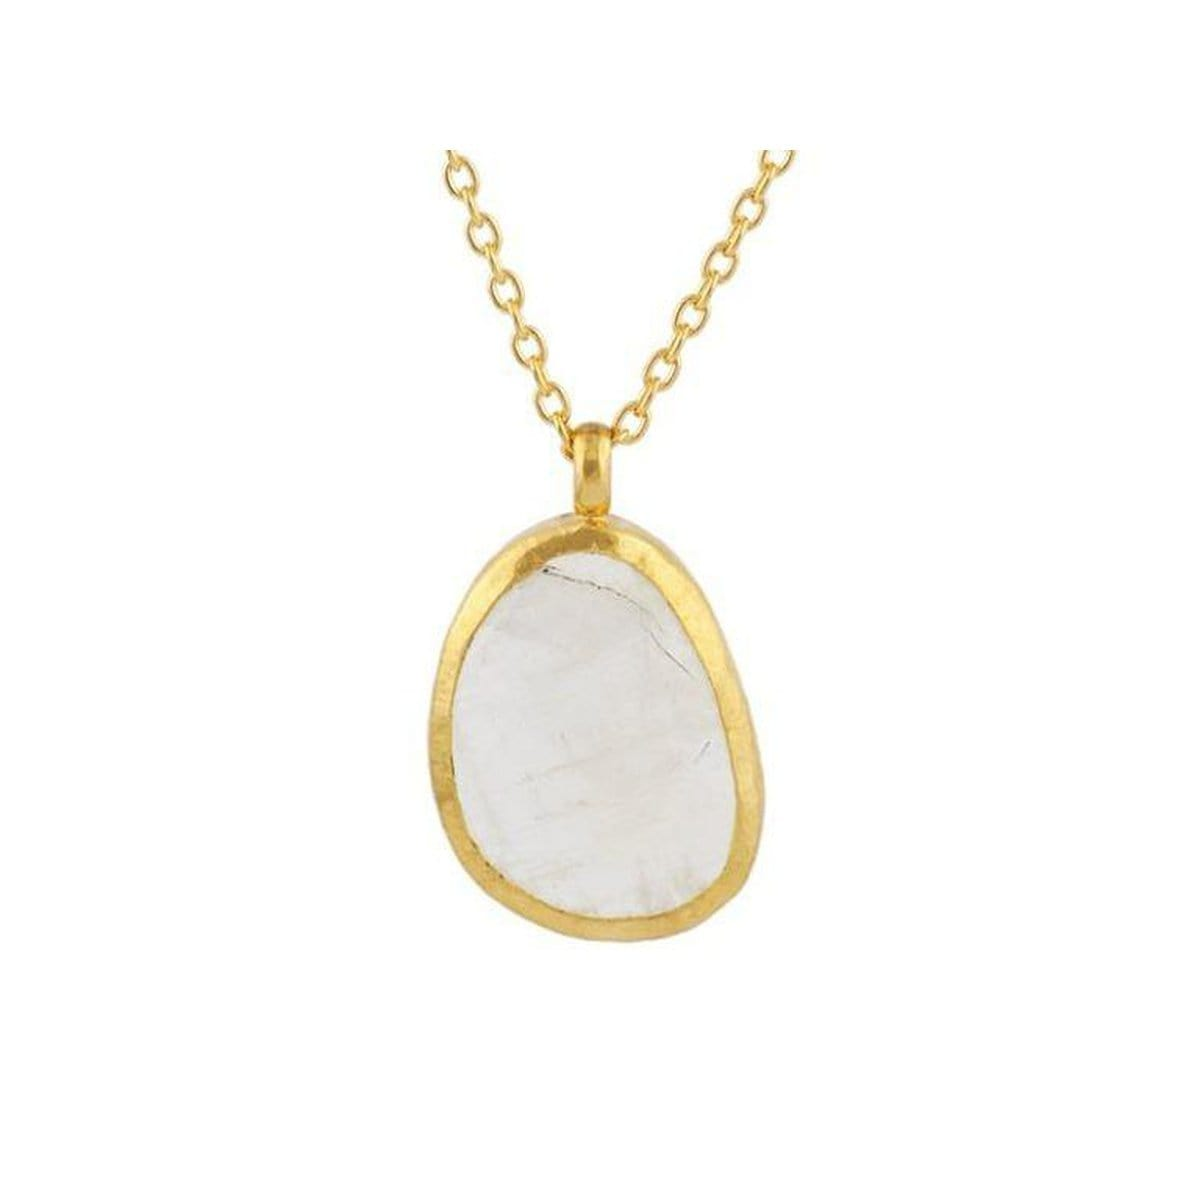 Elements 24K Gold Moonstone Necklace - N-U21602-MNS-GURHAN-Renee Taylor Gallery